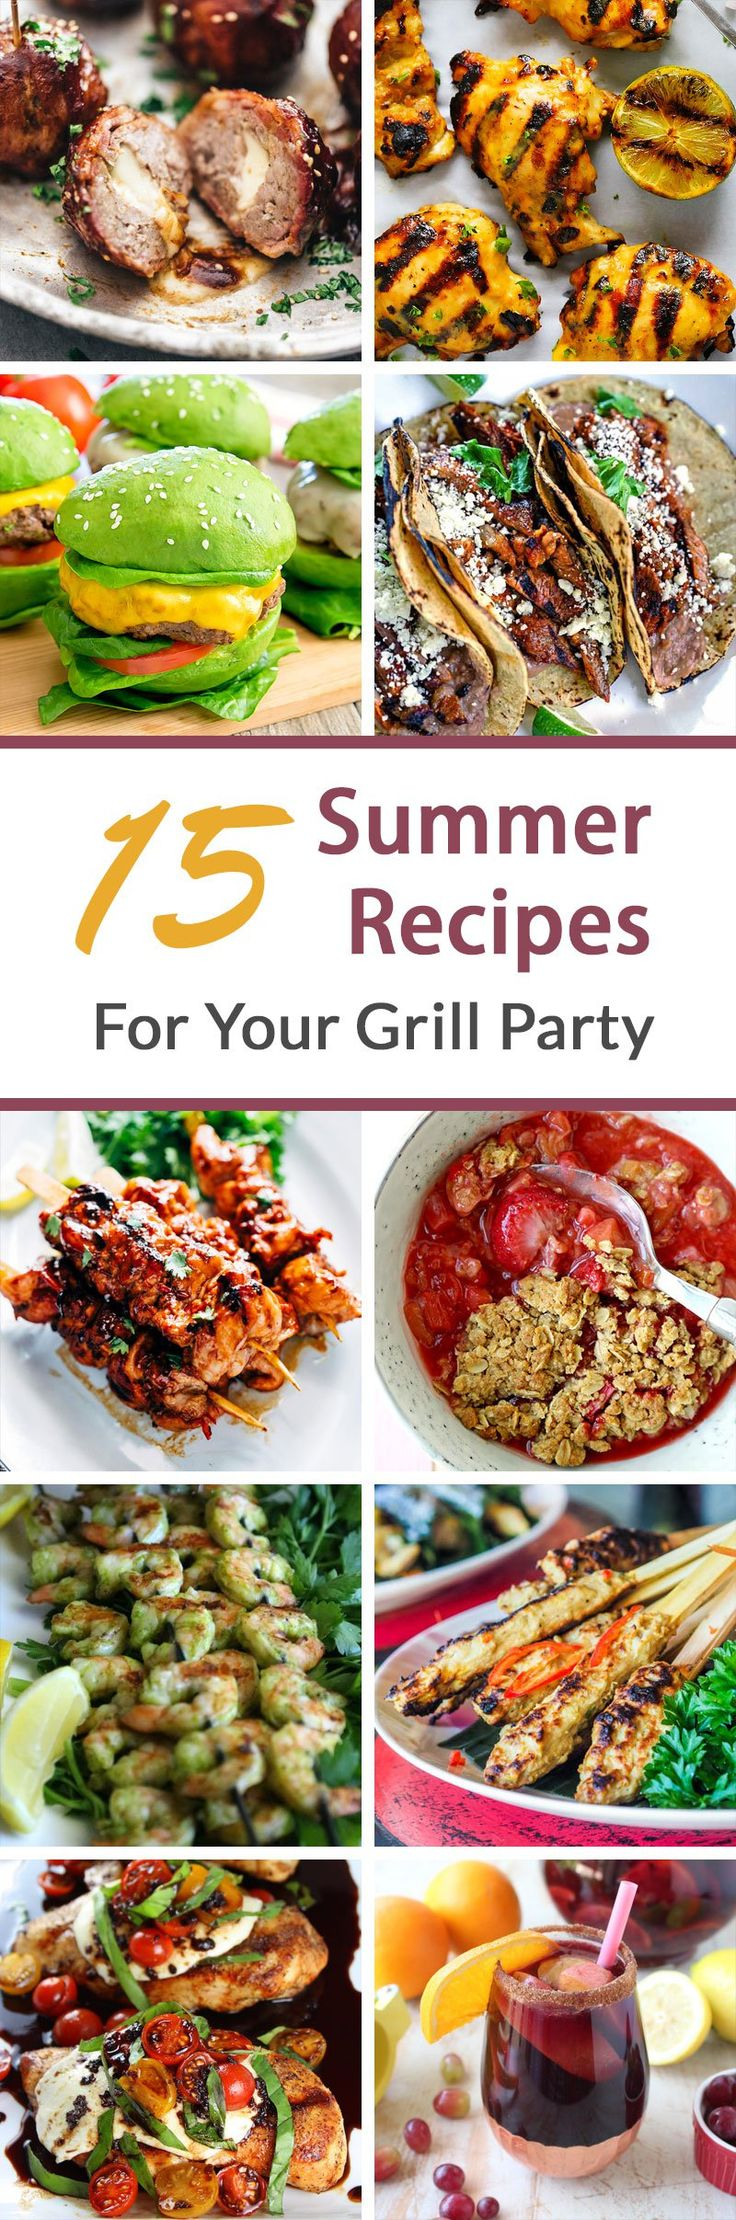 15 Best Summer Recipes For Your Grill Party